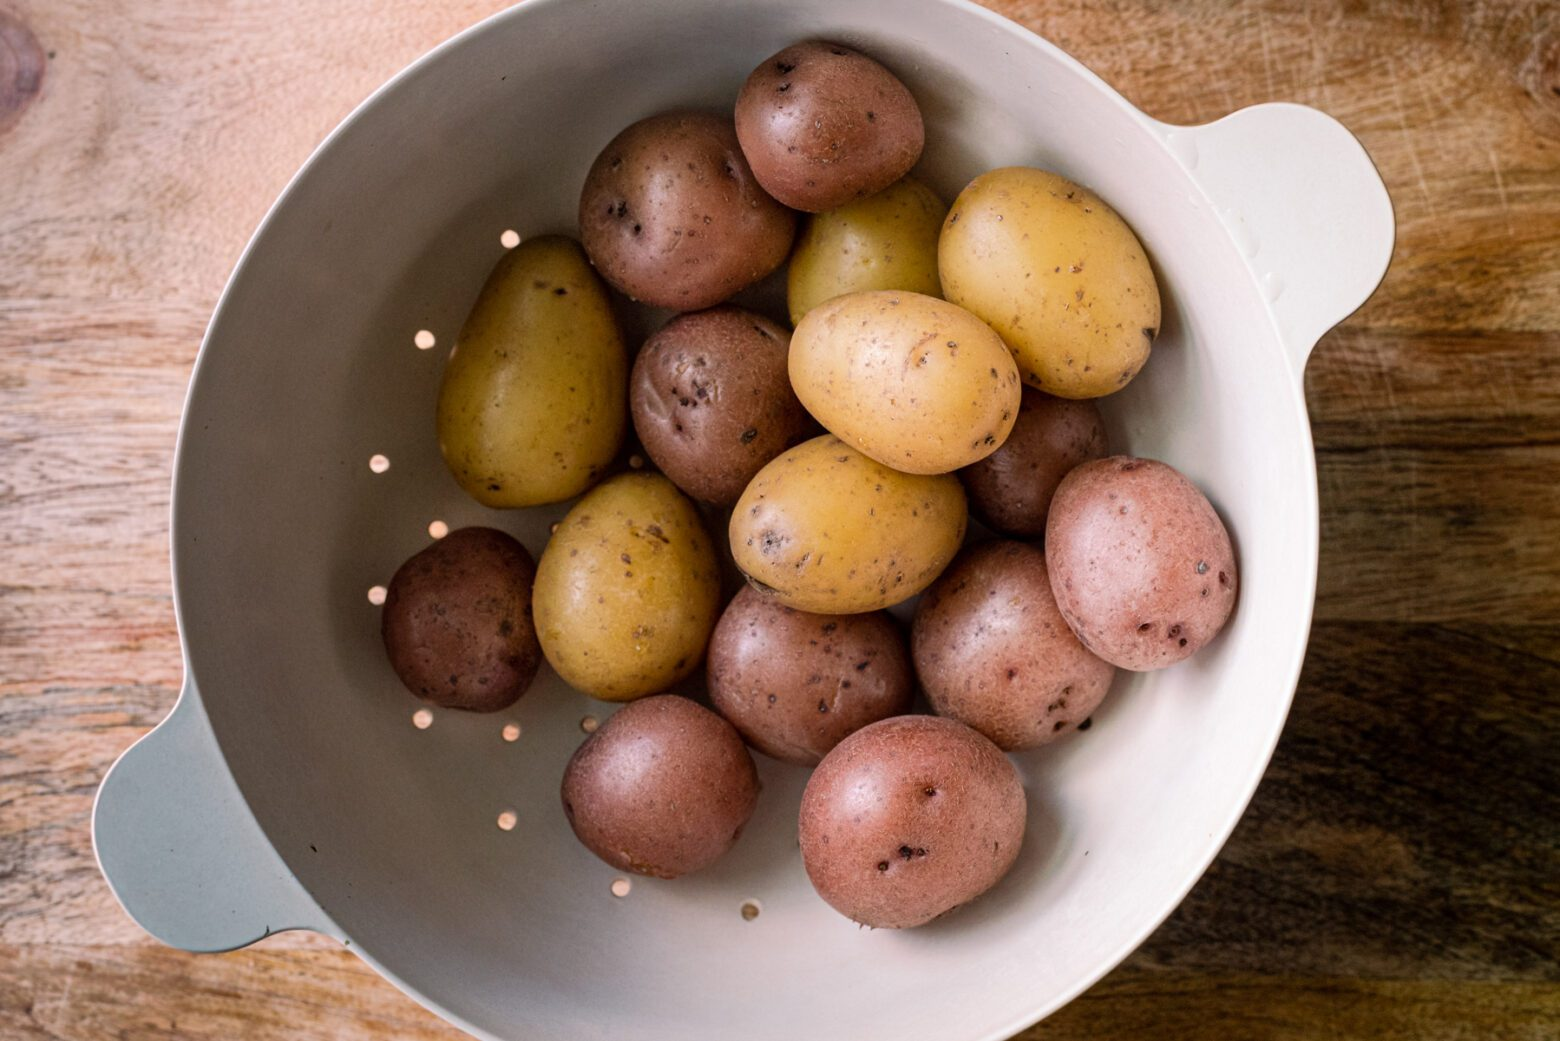 baby potatoes boiled and drained in a colander